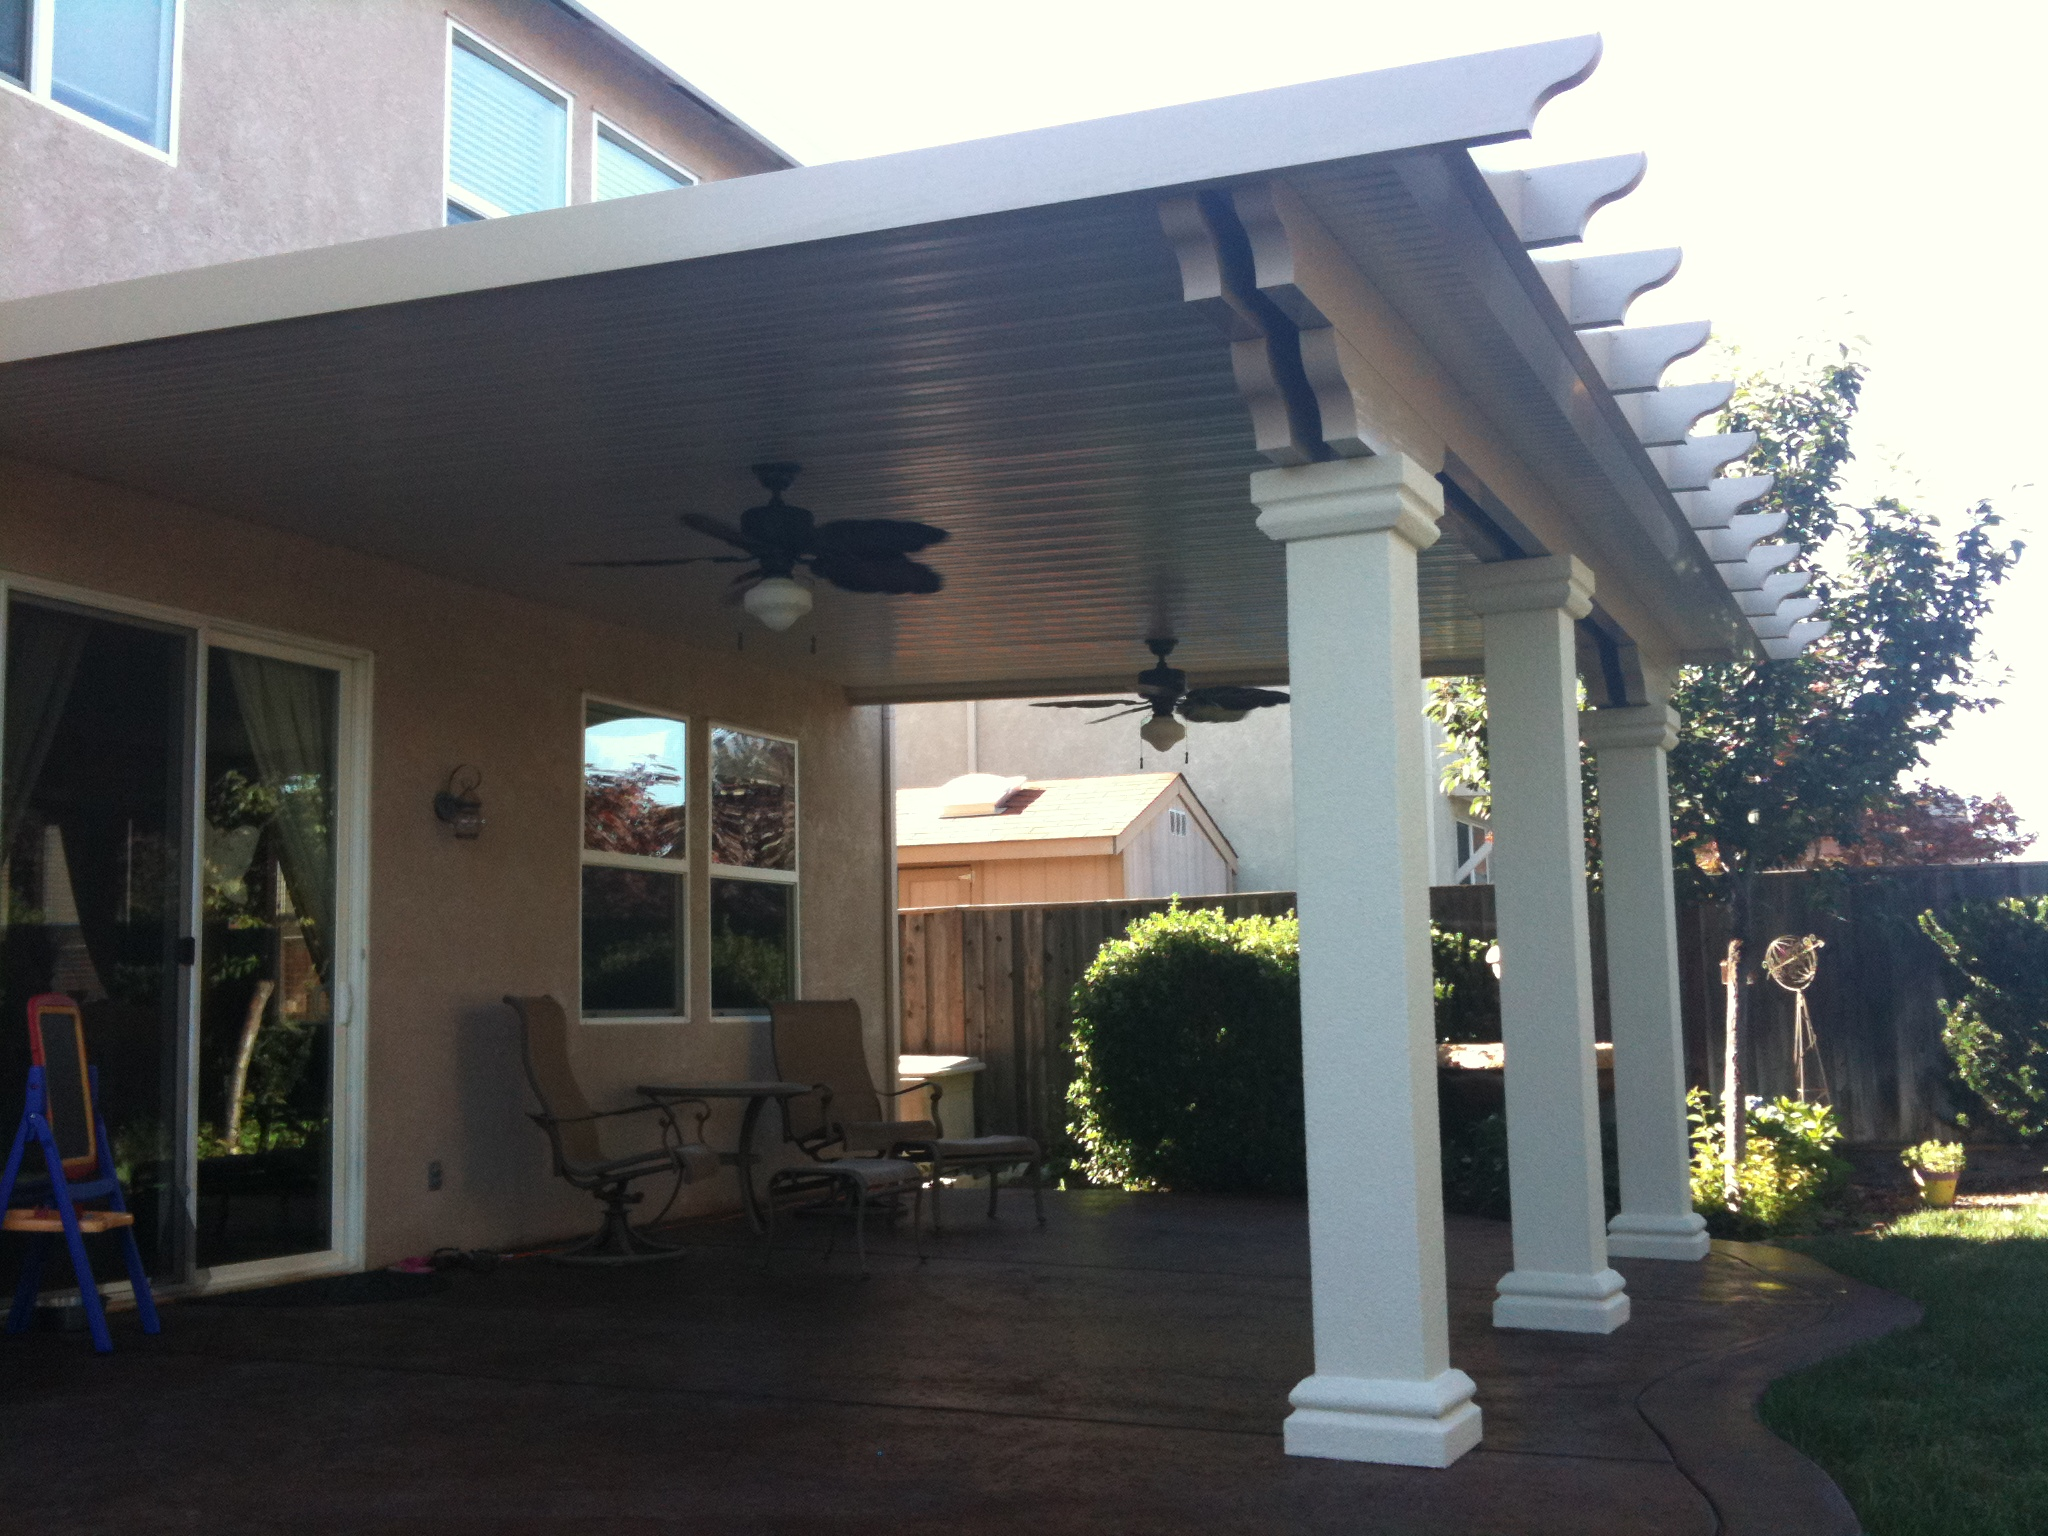 Roof columns white porch high pitch roof square columns for Stucco columns